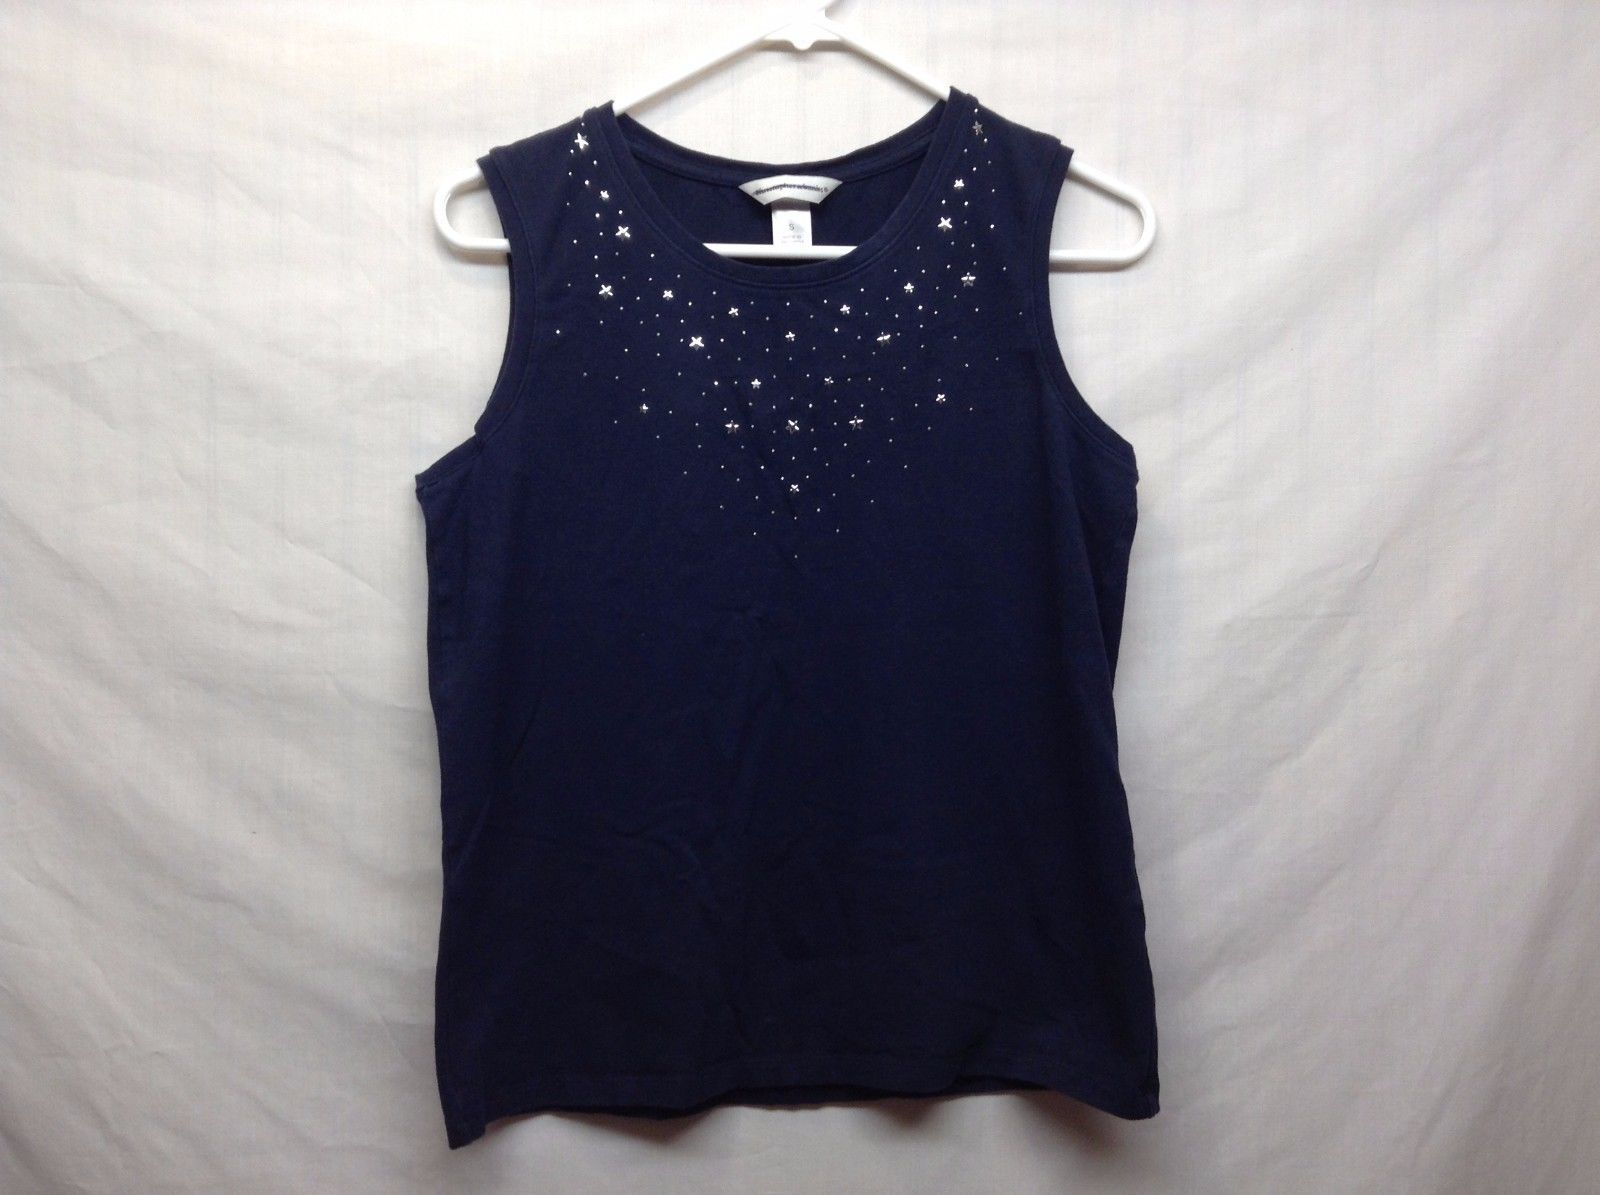 Christopher & Banks Navy Blue Tank Top w Silver Attached Star Design Sz S